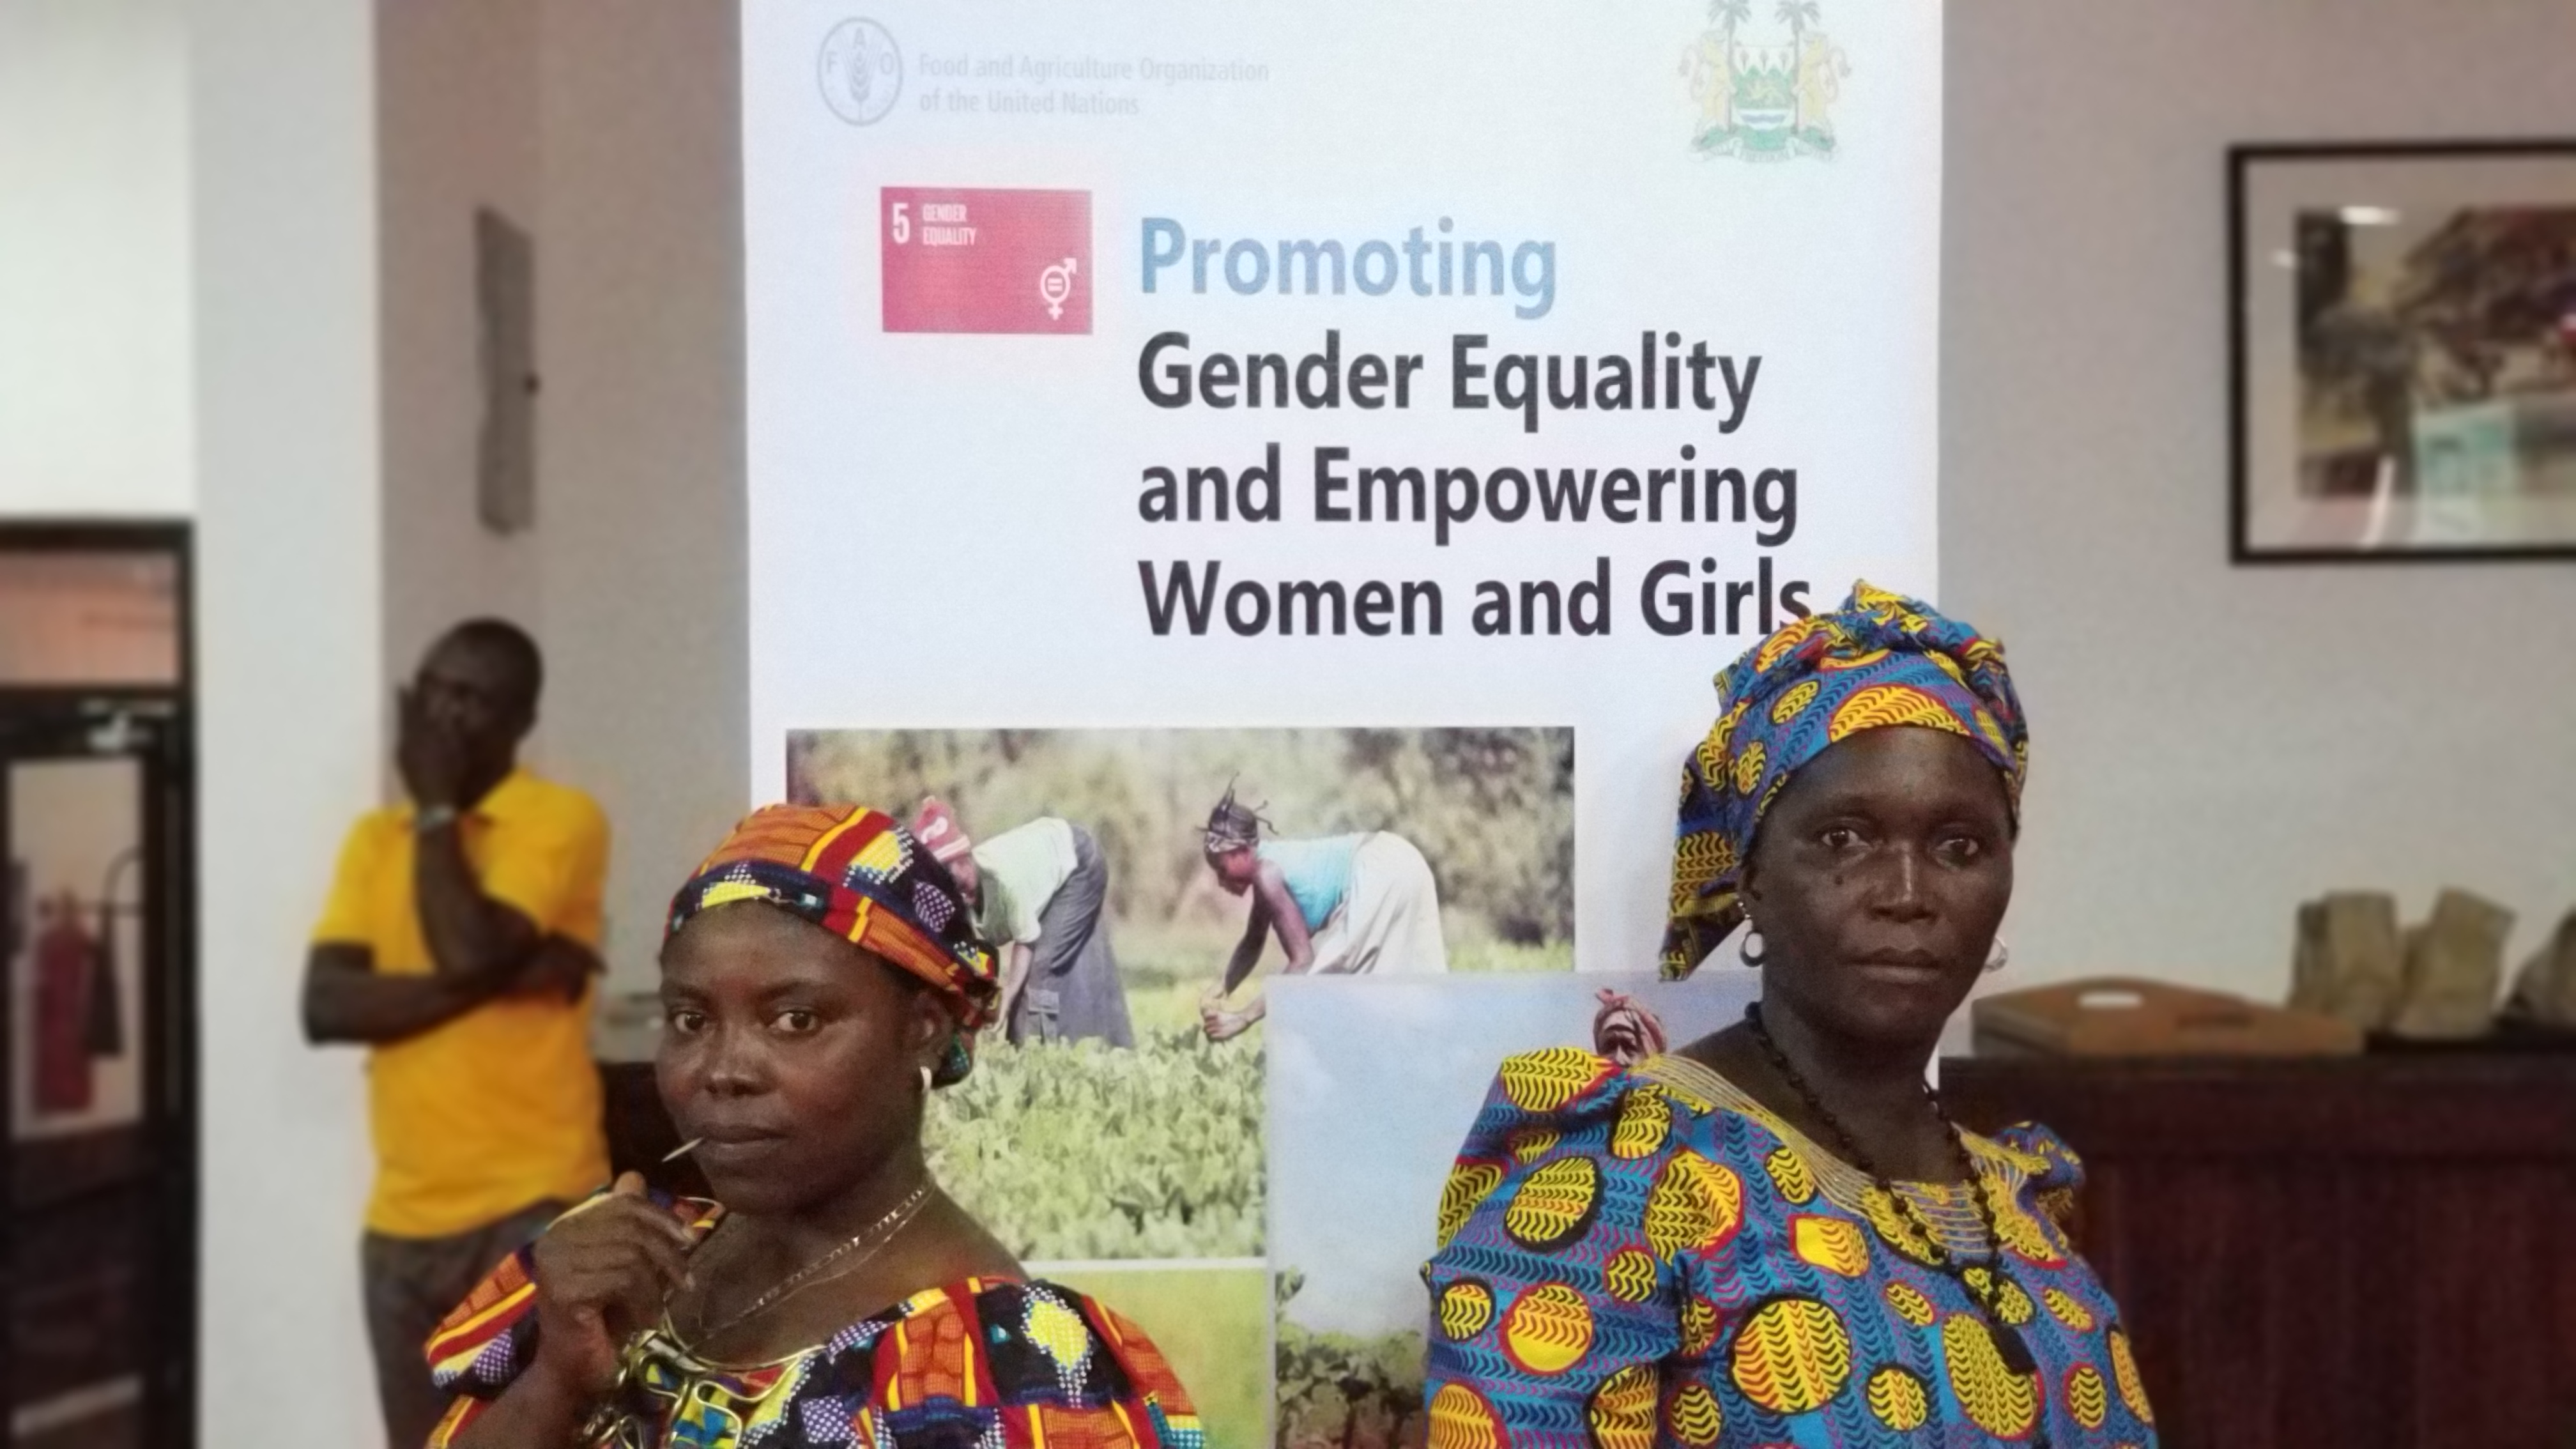 Two women stand powerfully in front of an banner promoting SDG 5: Gender equality and empowering women and girls.